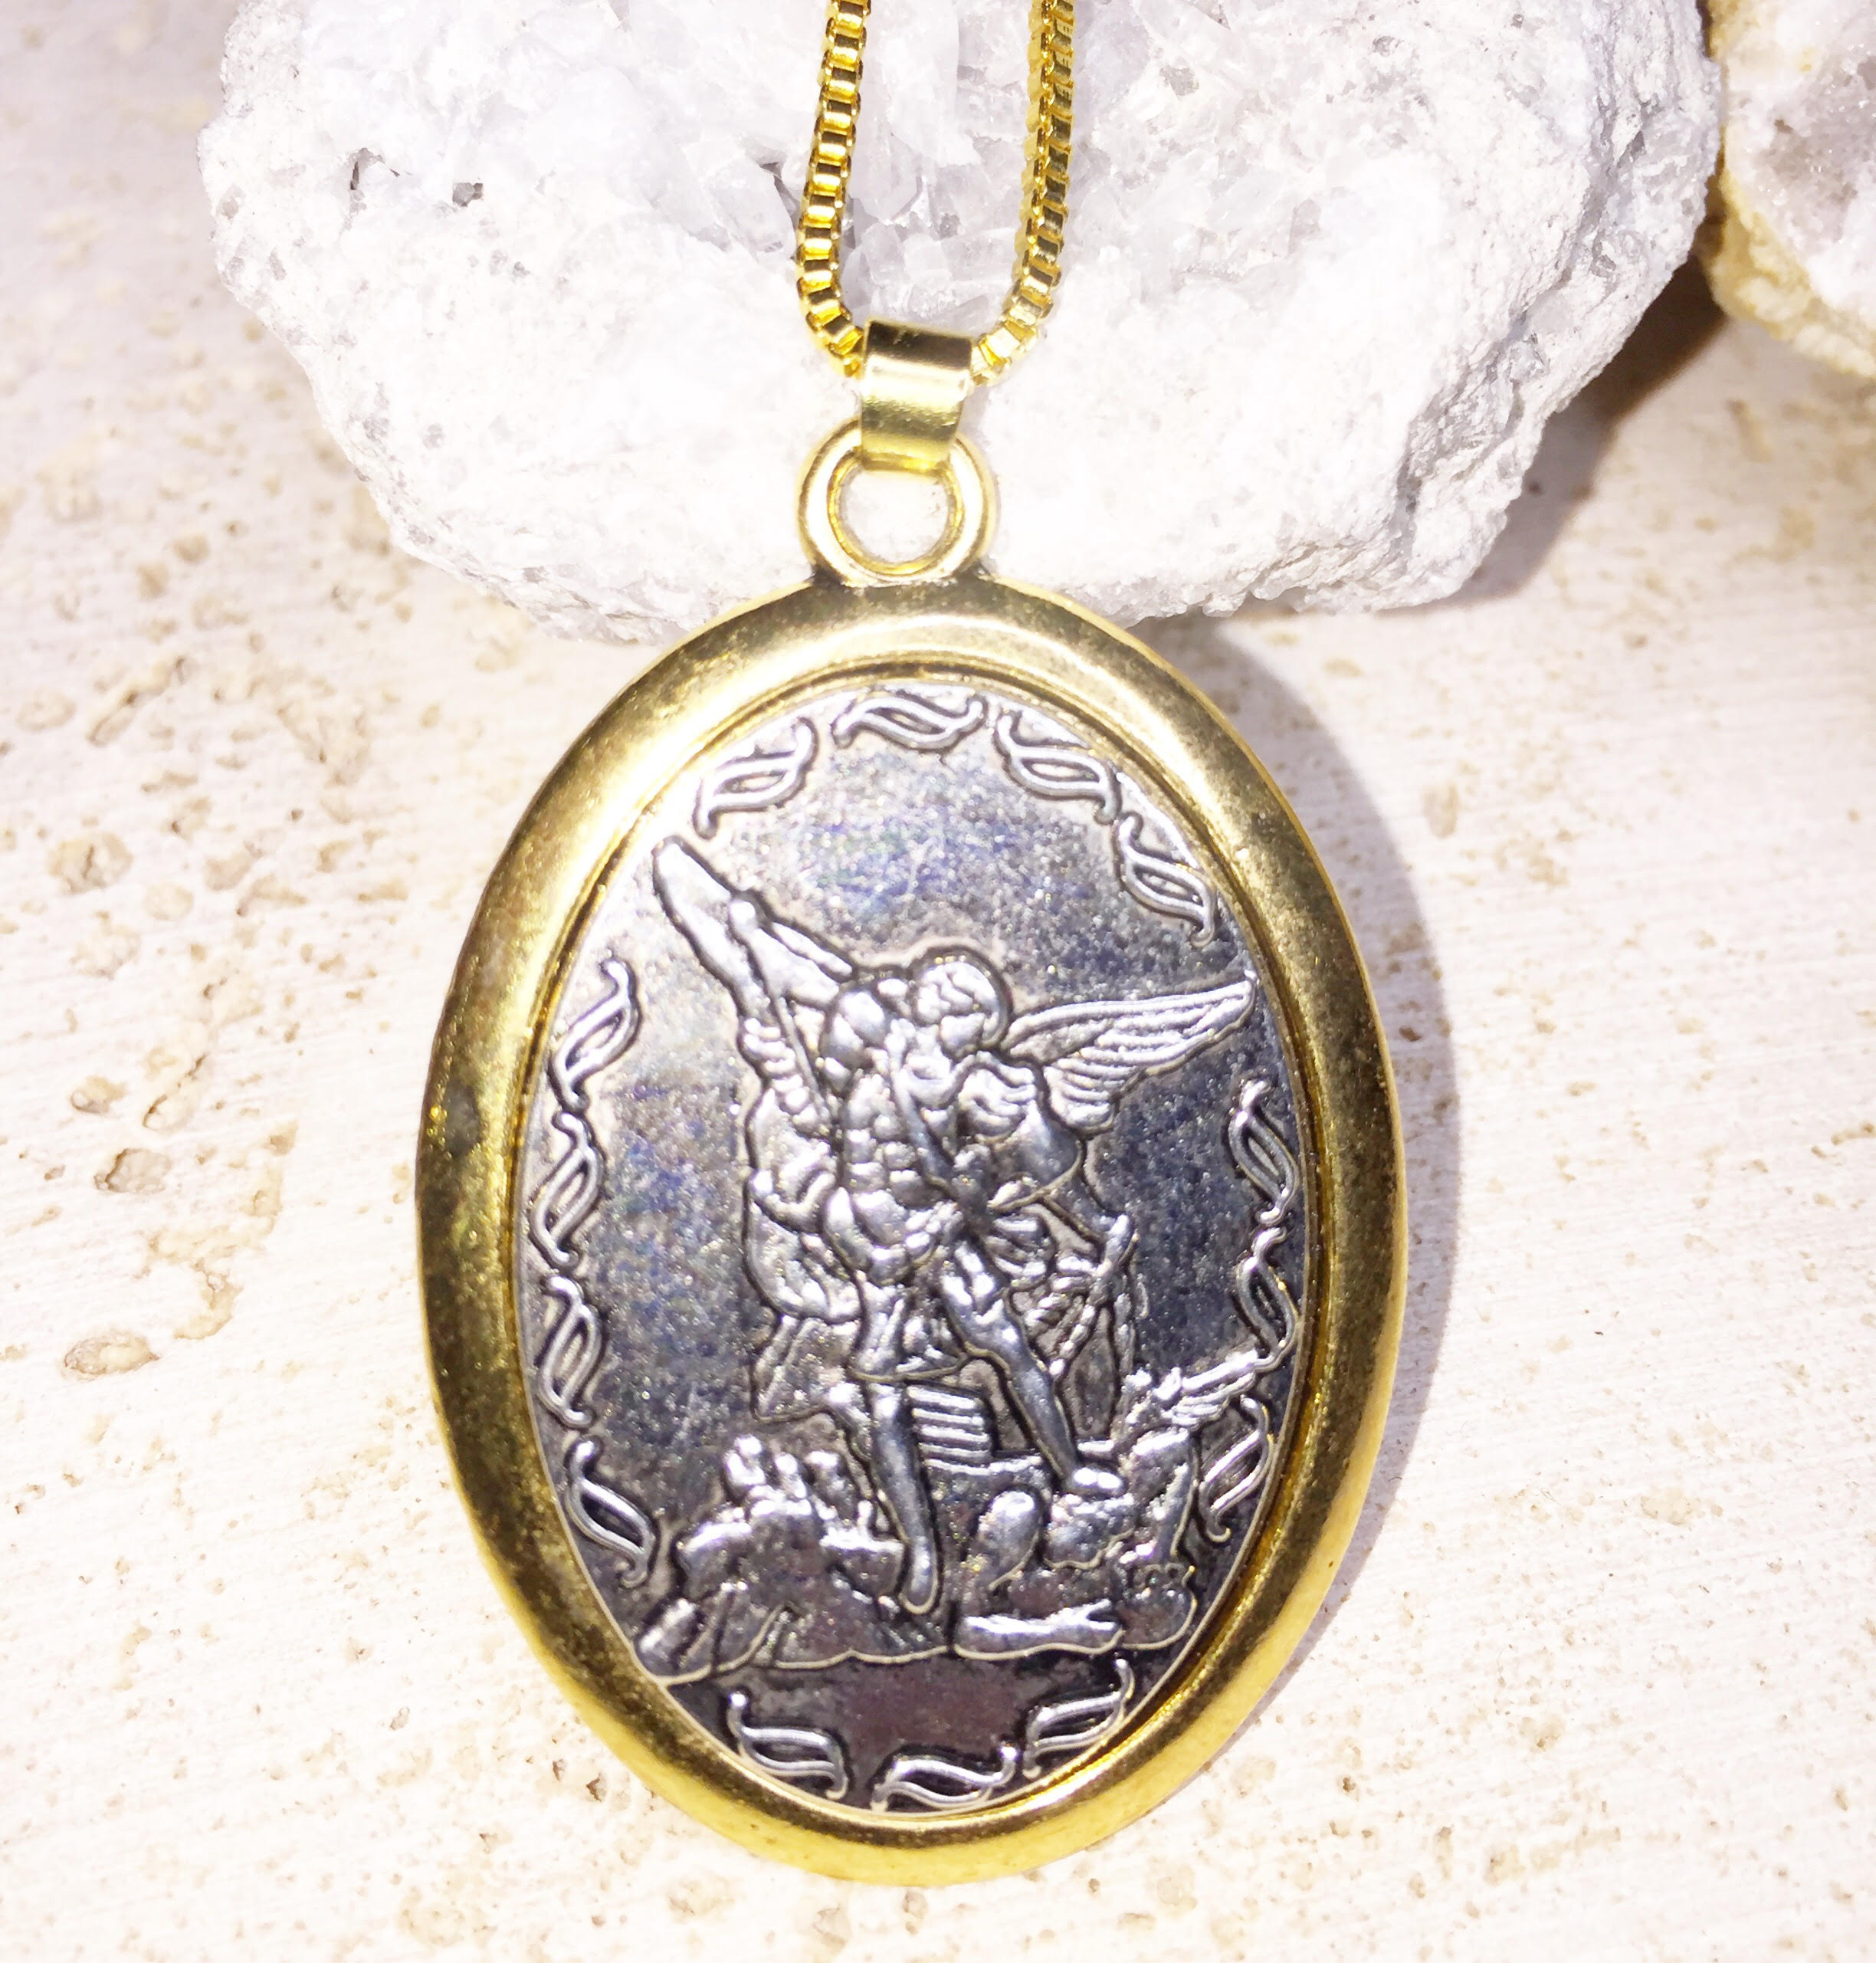 Archangel Michael Necklace (Blessed)